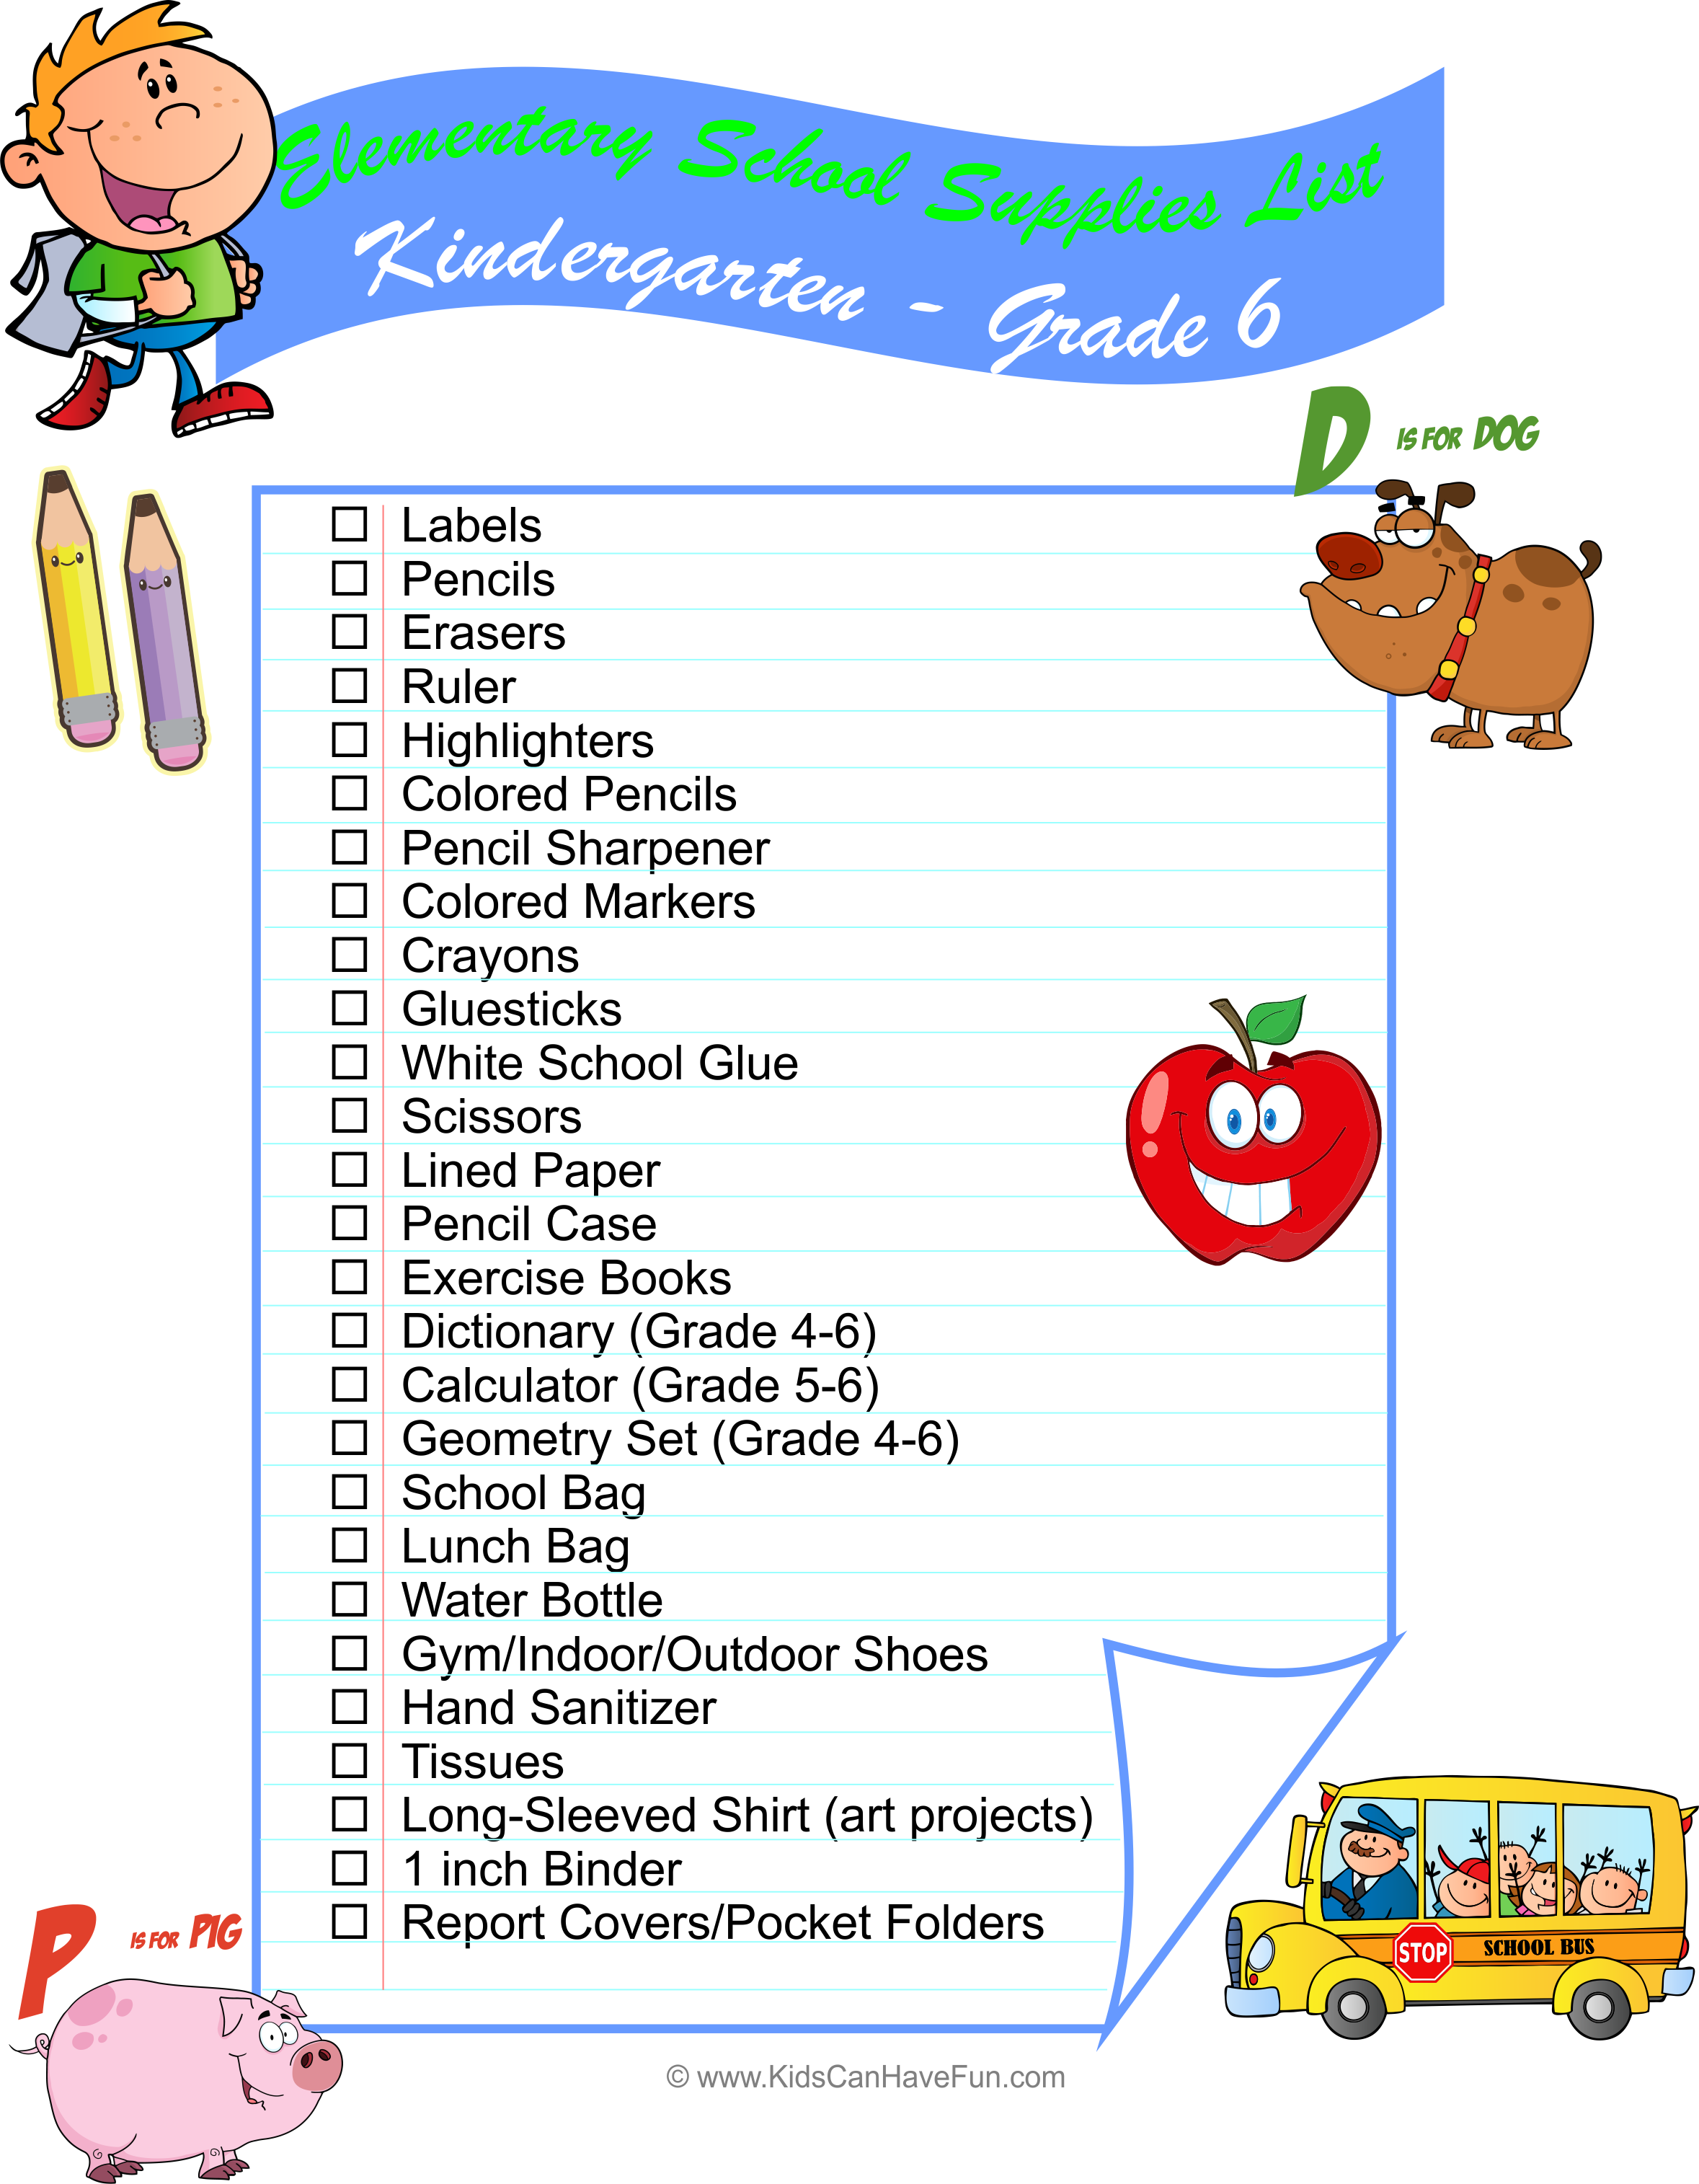 Elementary School K 6 Supplies List To Help Get The Kids